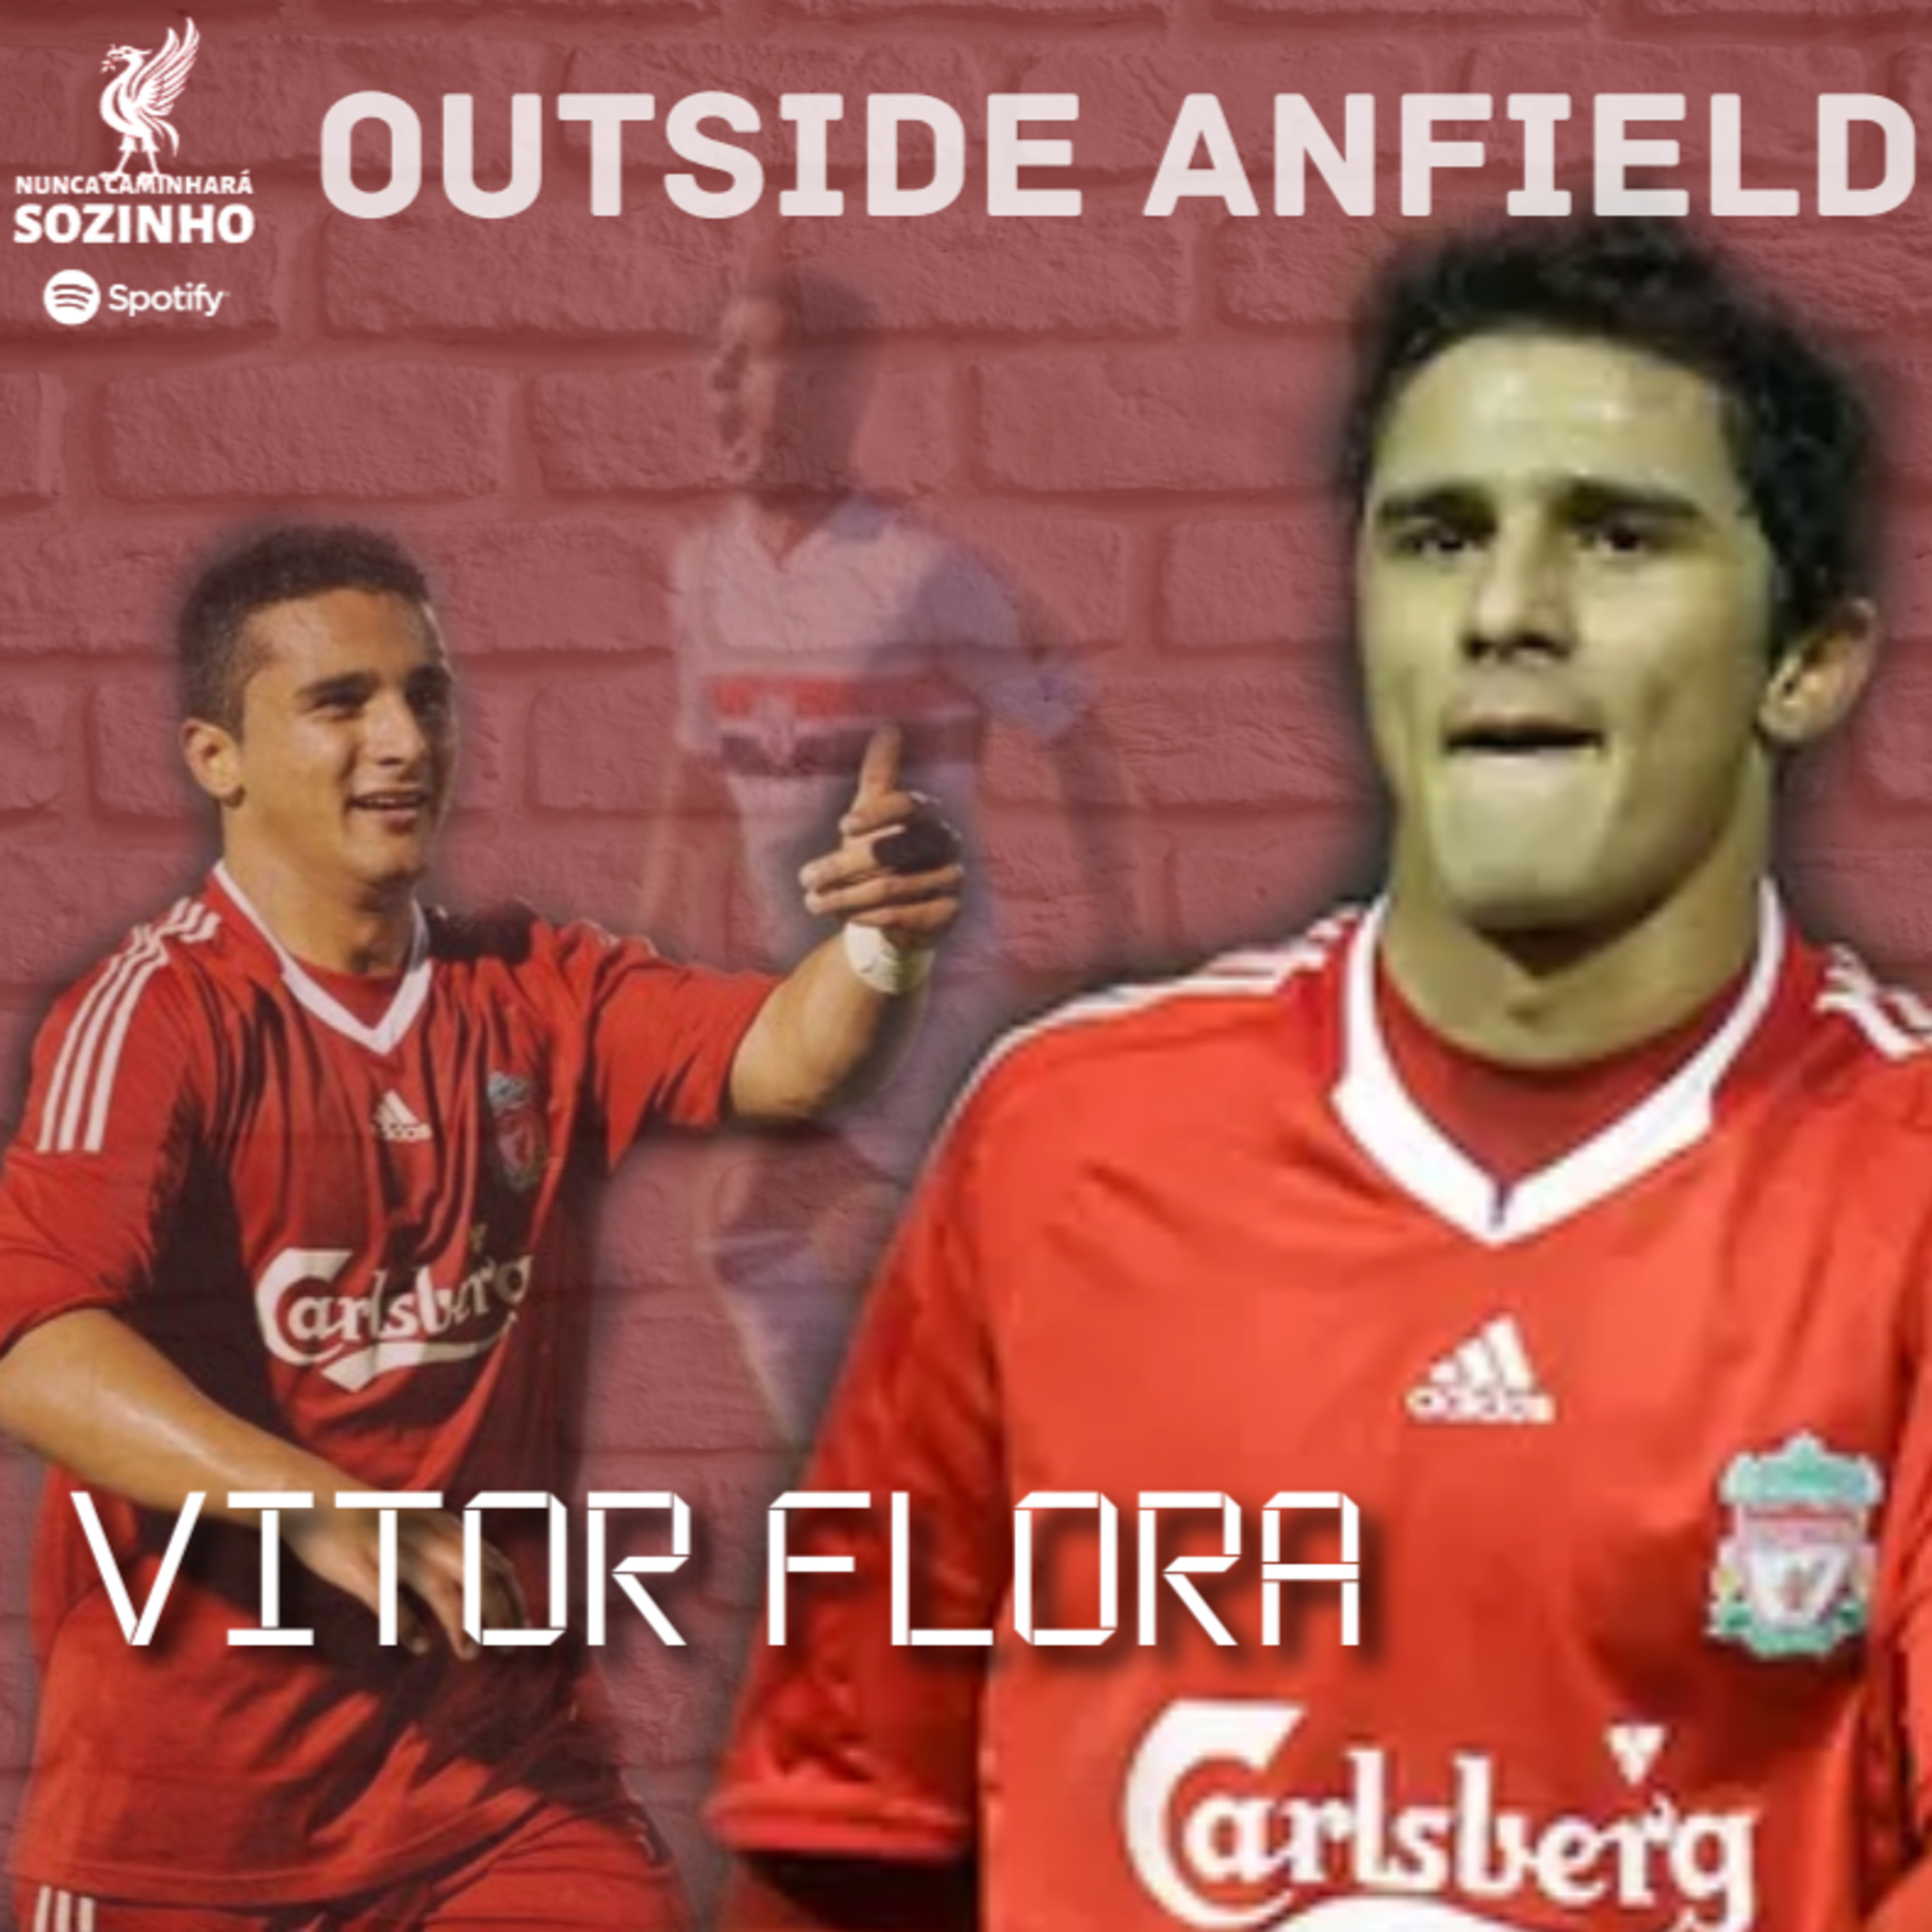 Outside Anfield - Vitor Flora